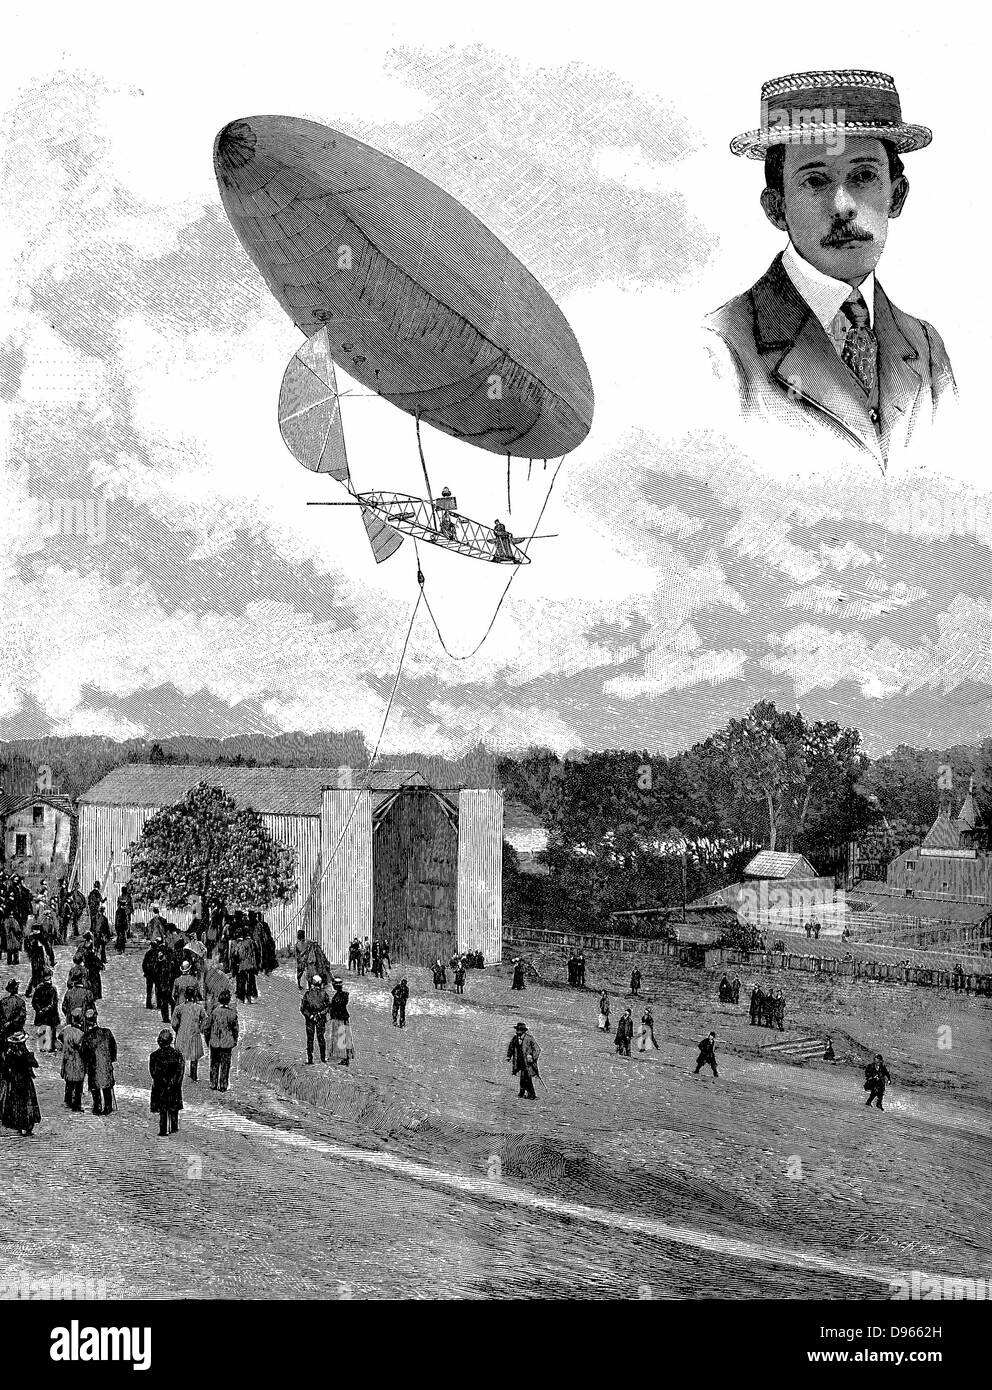 Alberto Santos-Dumont (1873-1932) Brazilian aviation pioneer. Here in his airship (dirigible) No. 6 descending at - Stock Image